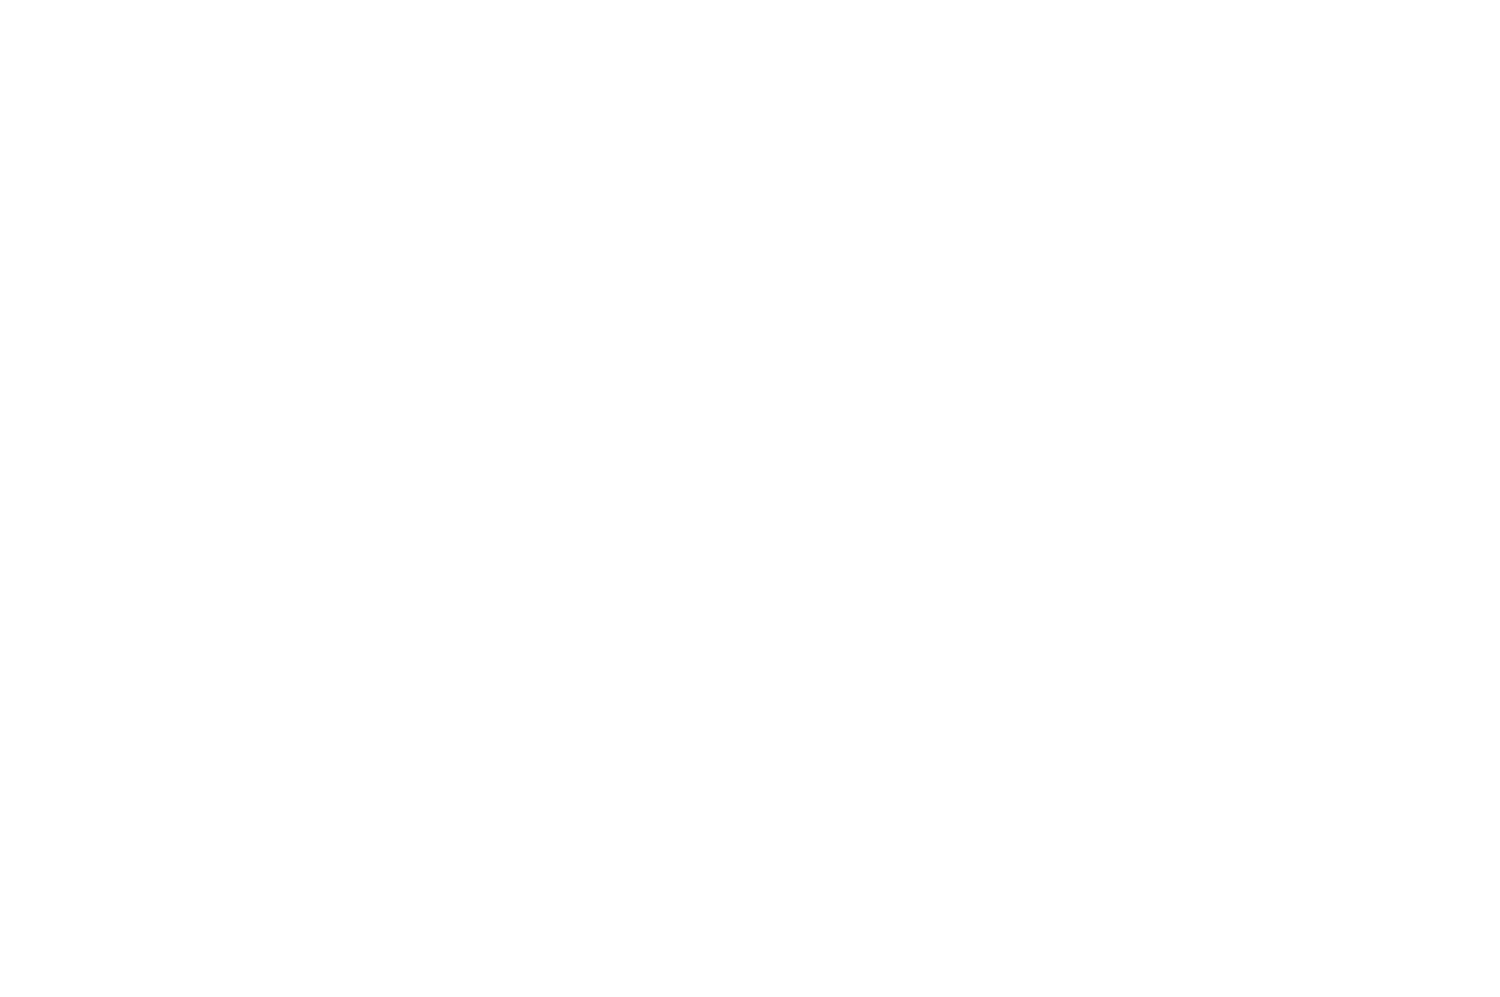 Zenith Insured Credit